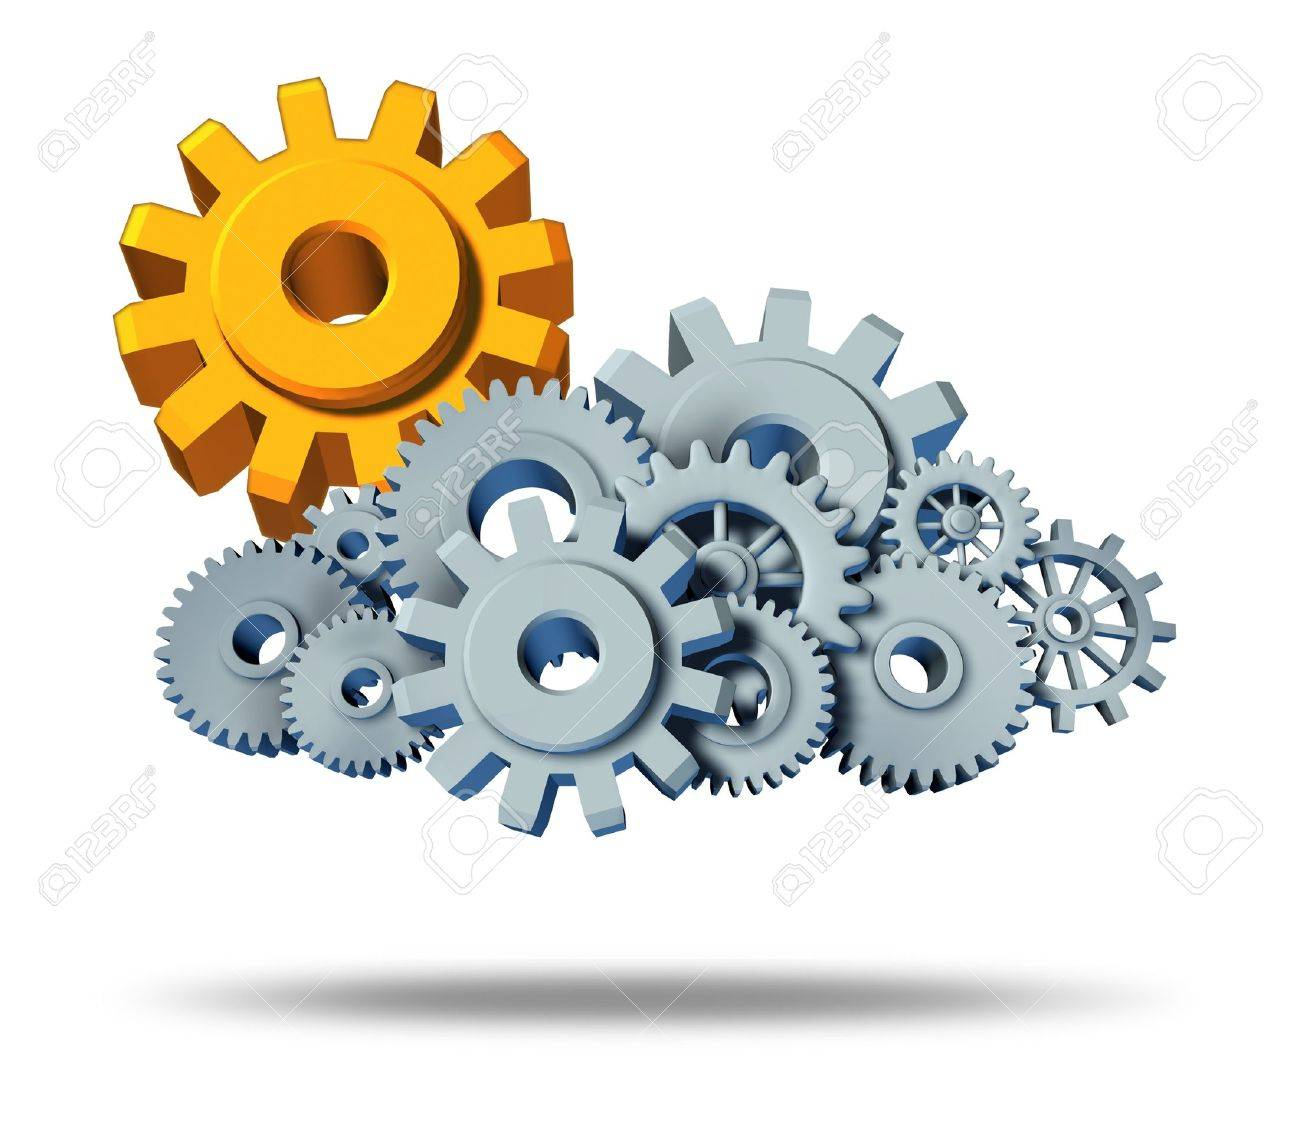 Safe cloud computing security in protected servers and the assurance of virtual apps for computers hooked up with the cloud showing  gears with a gold sun gear on white background showing the peace of mind of virtual data. Stock Photo - 11221496